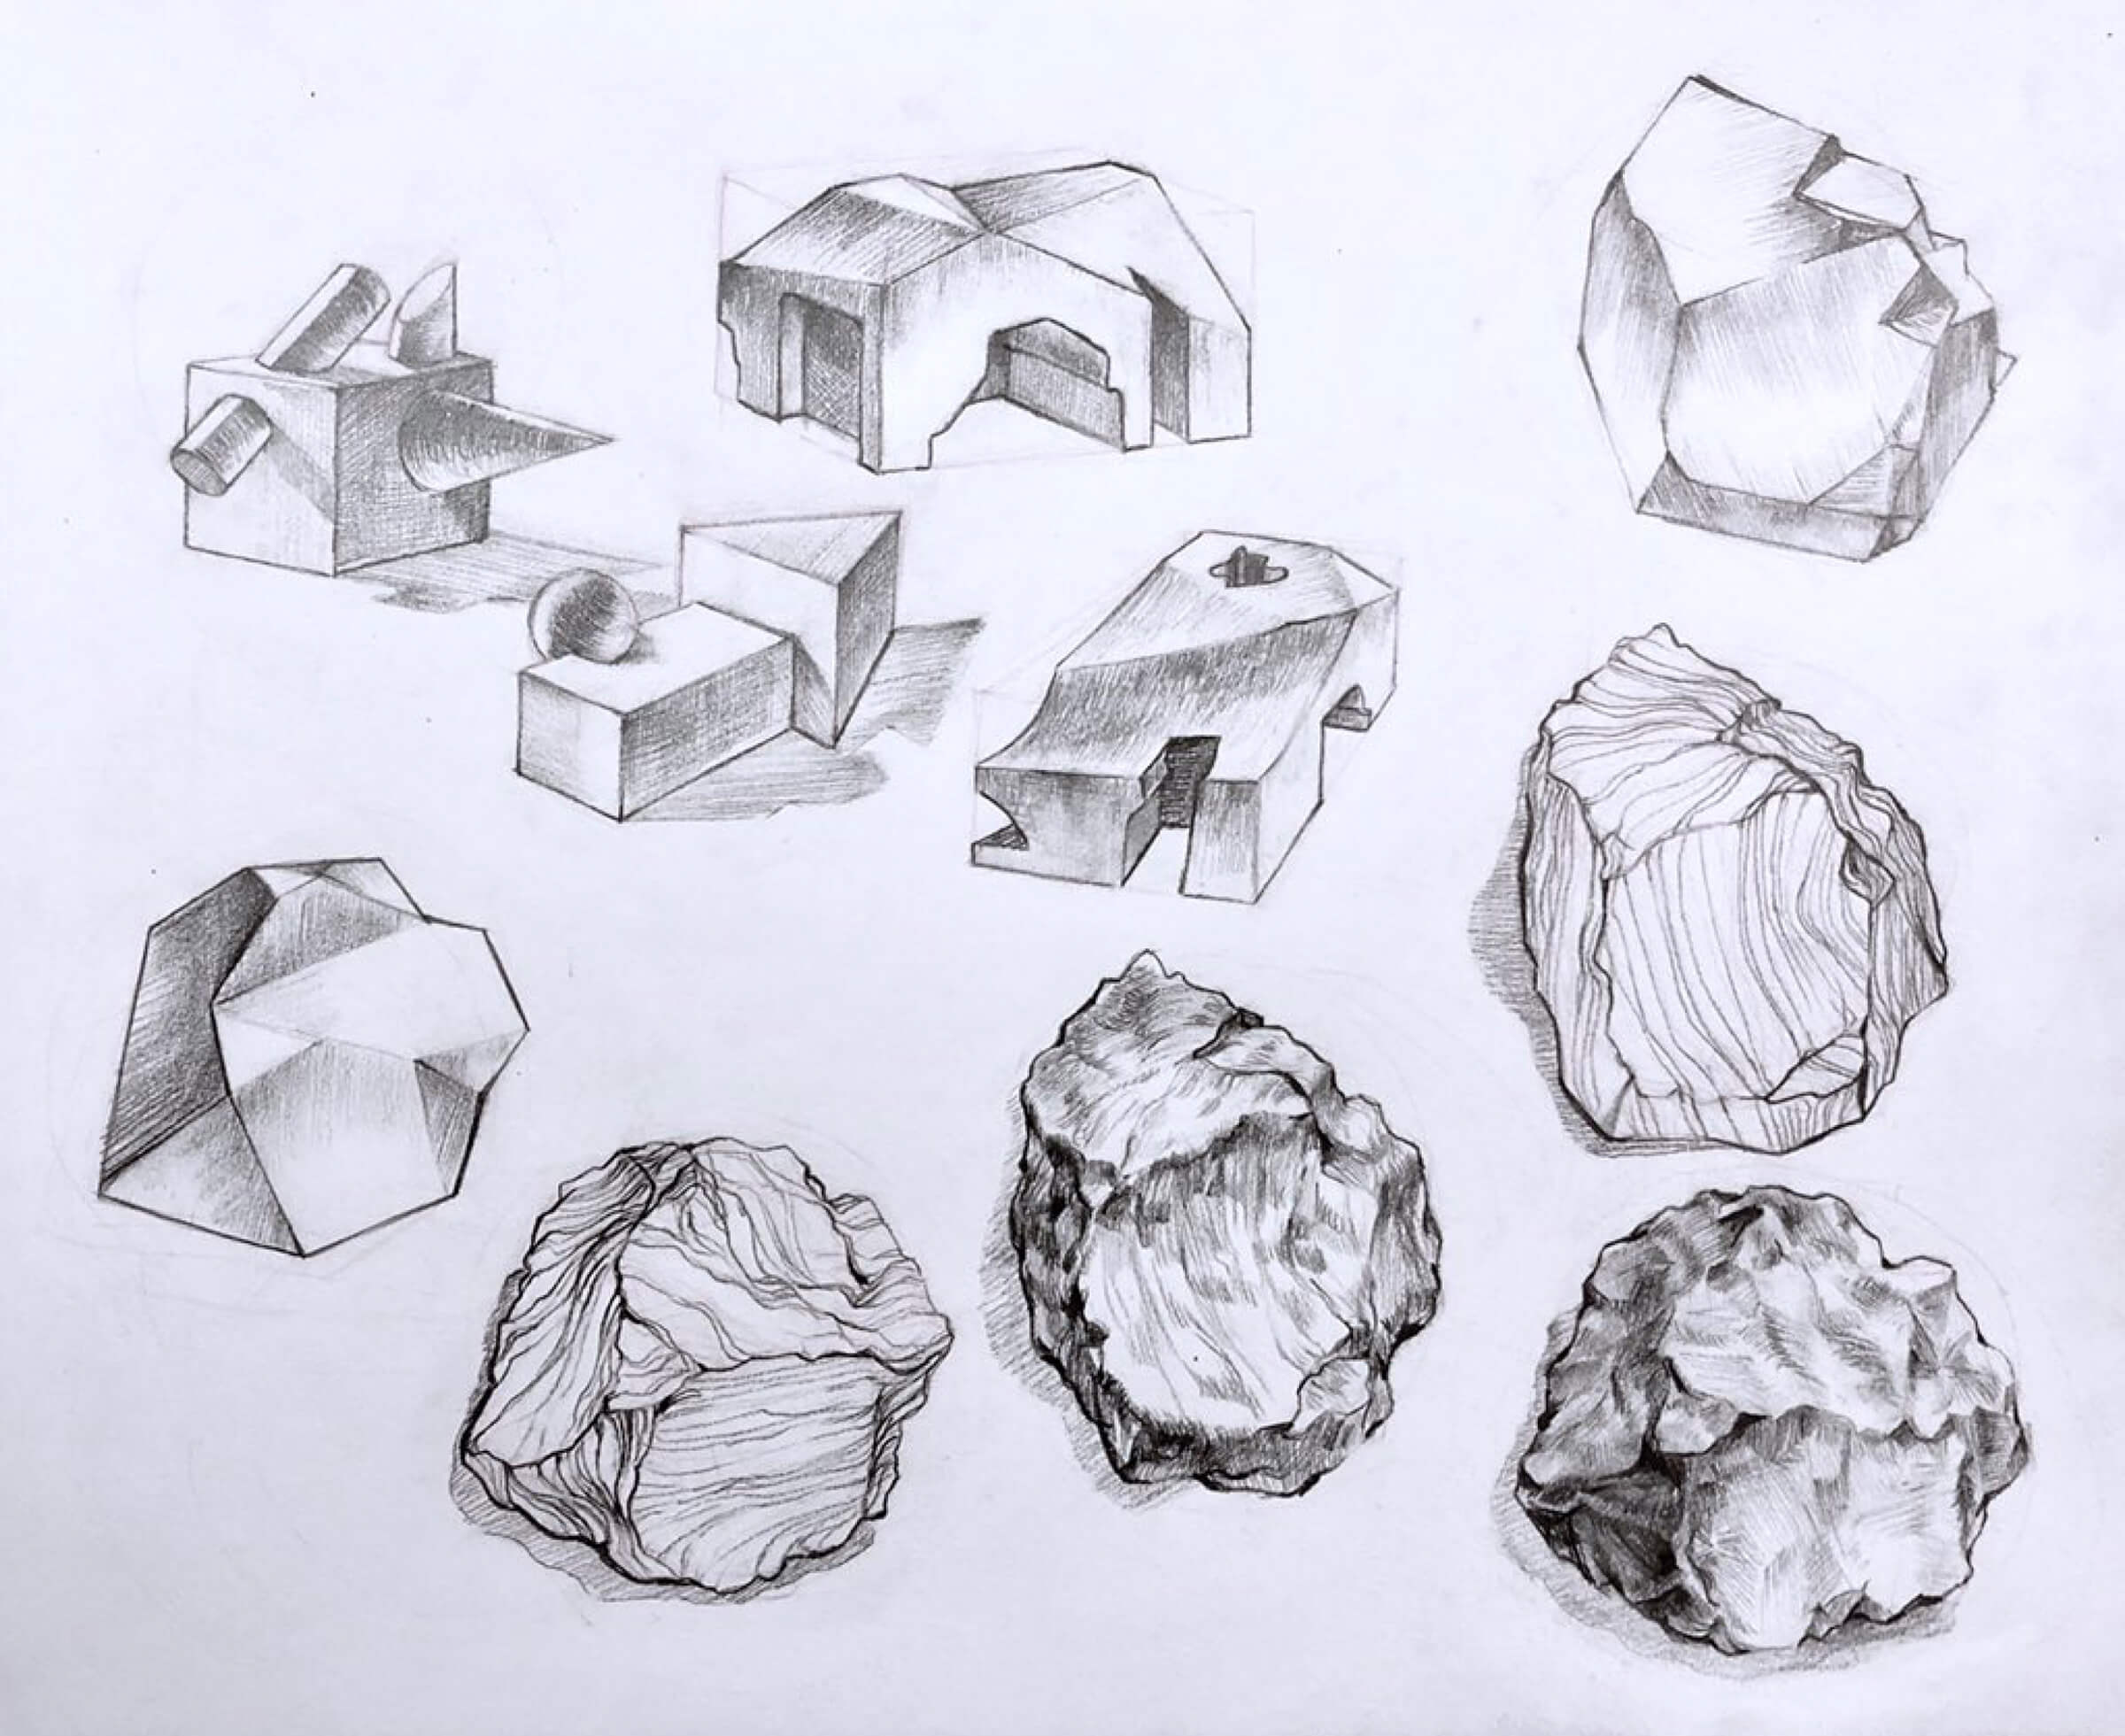 A series of pencil drawings of rocks and geometric shapes